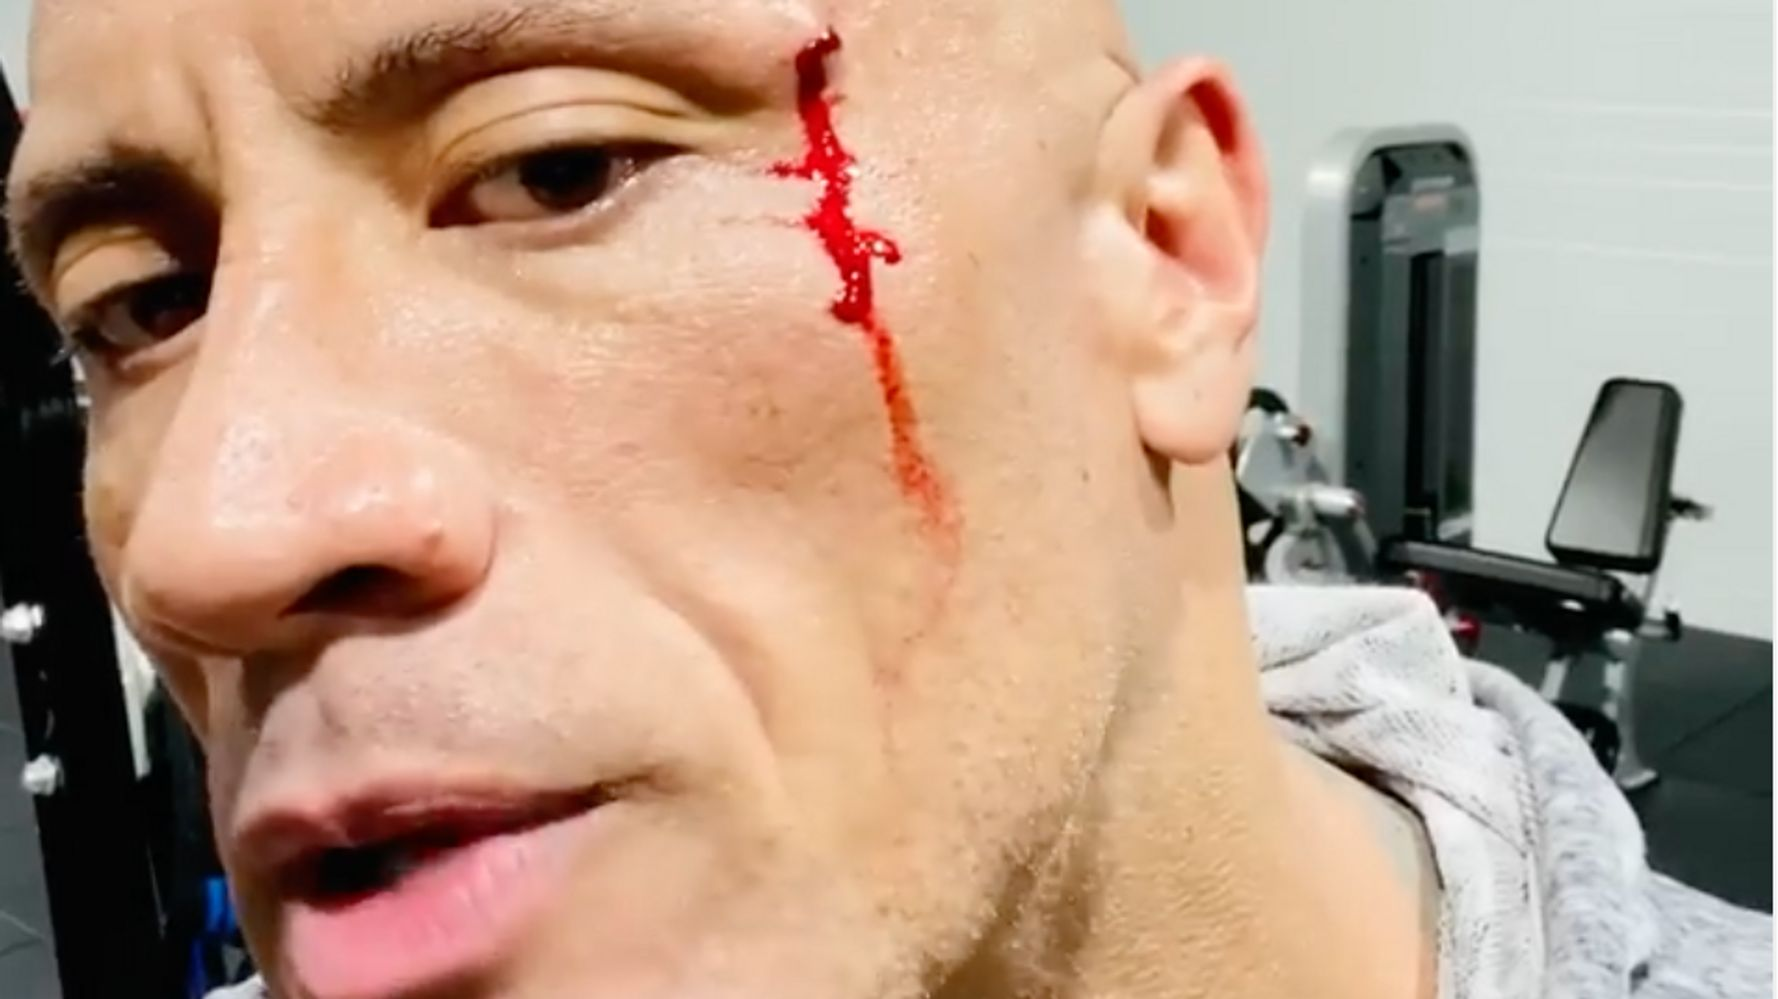 Dwayne 'The Rock' Johnson Tastes His Own Blood After Gym Accident In Intense Video